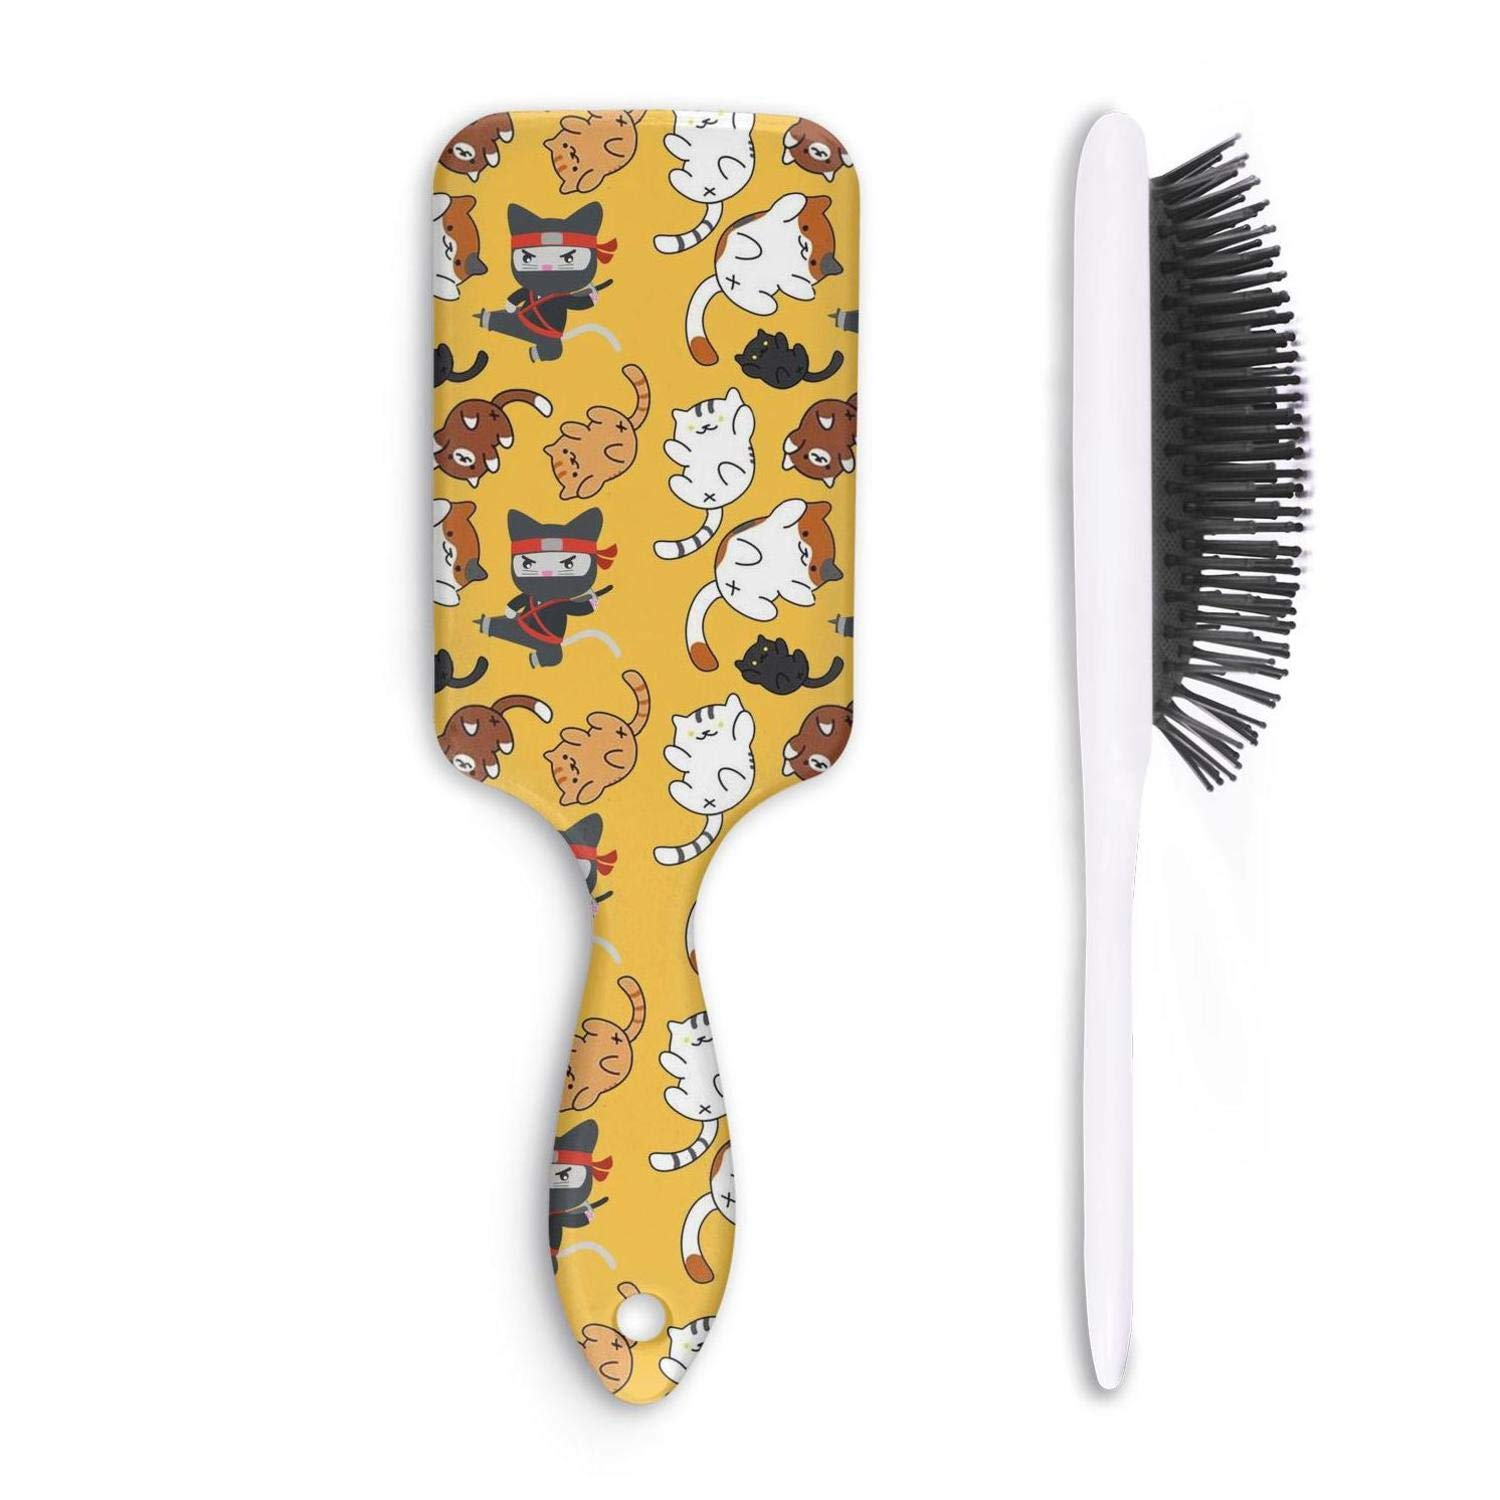 Amazon.com : Hair Brush Yellow Ninja Stars And cats ...